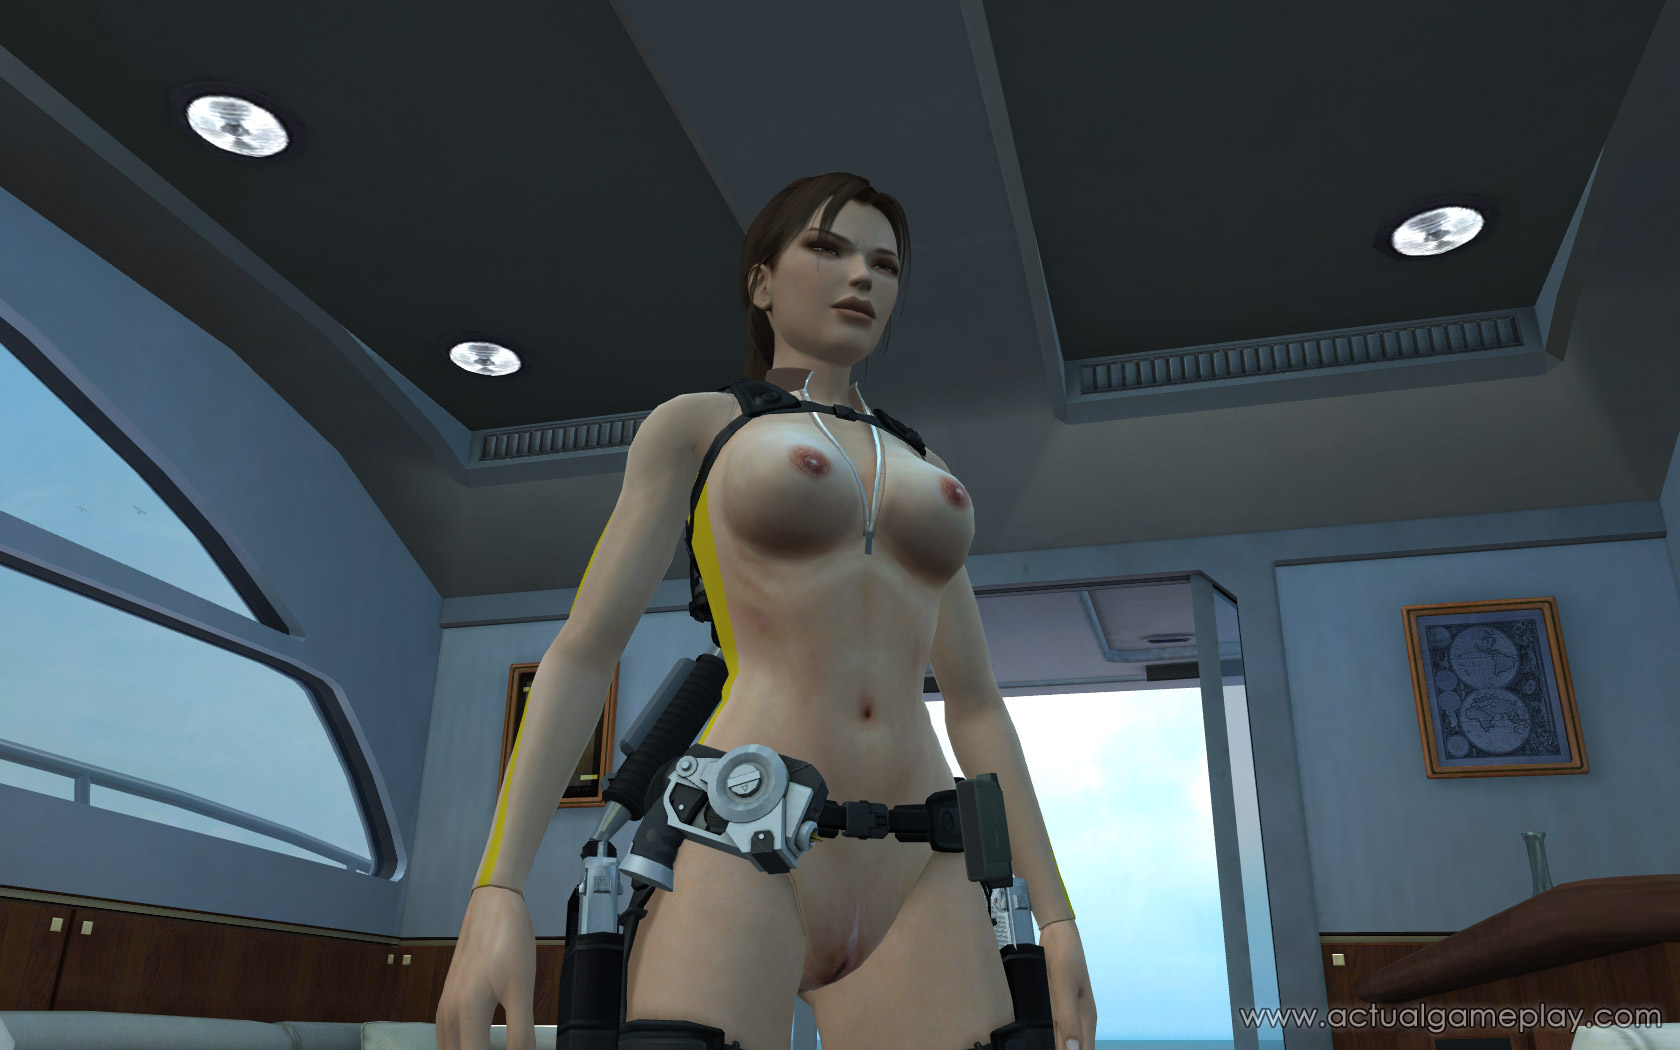 Tomb raider - legend nude patch nackt photos